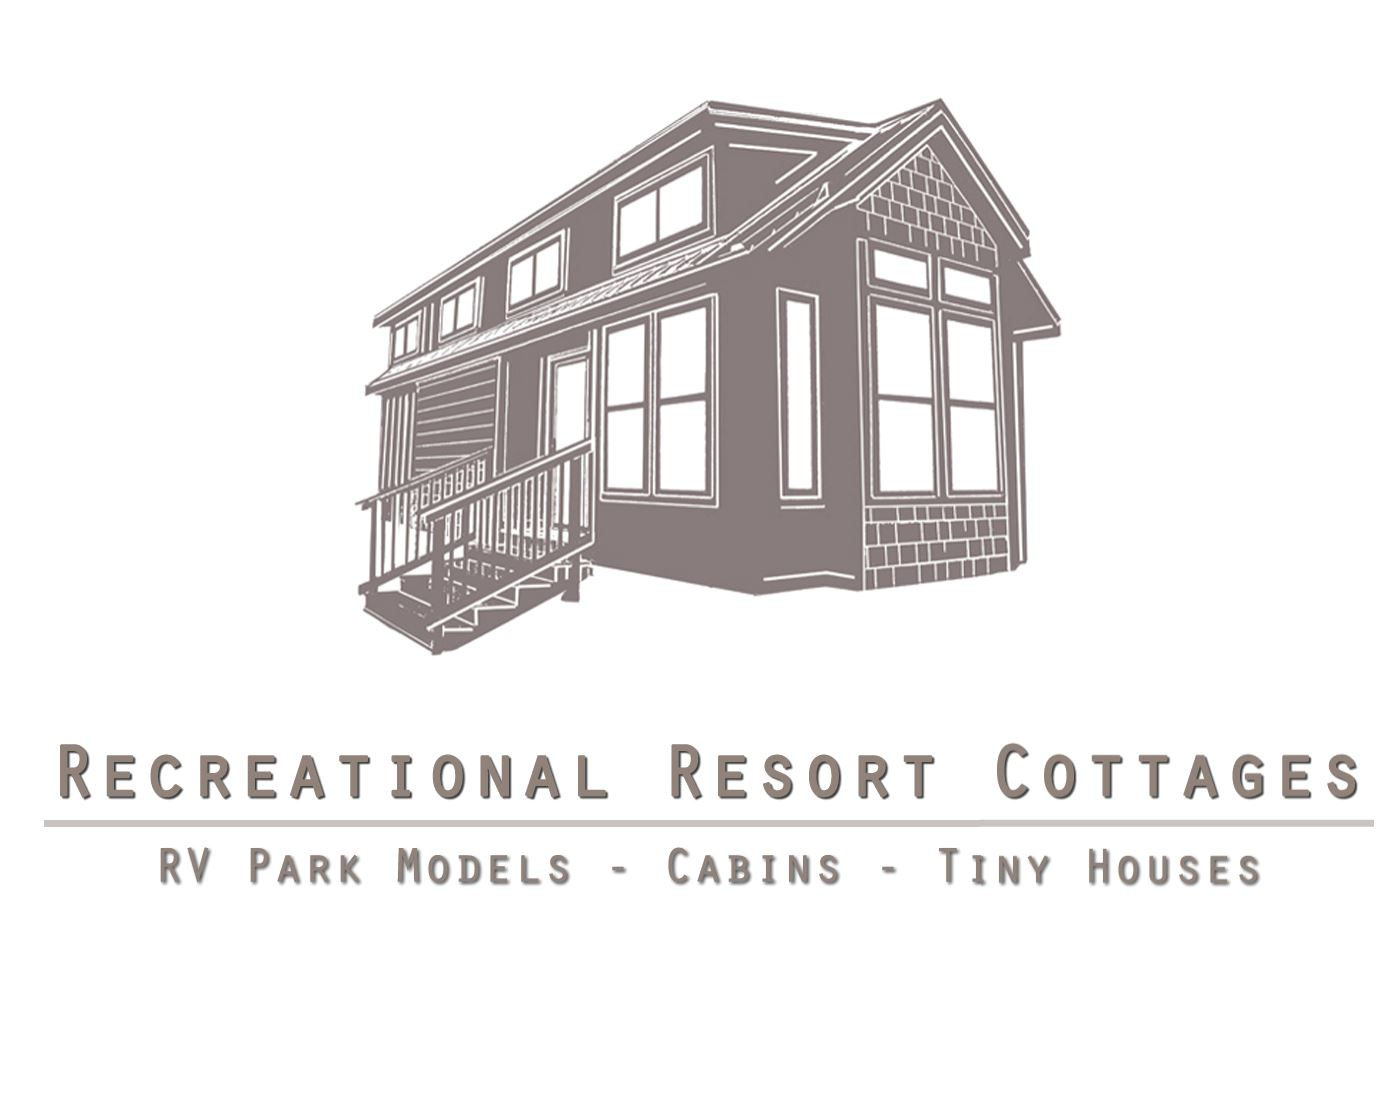 Recreational Resort Cottages Logo